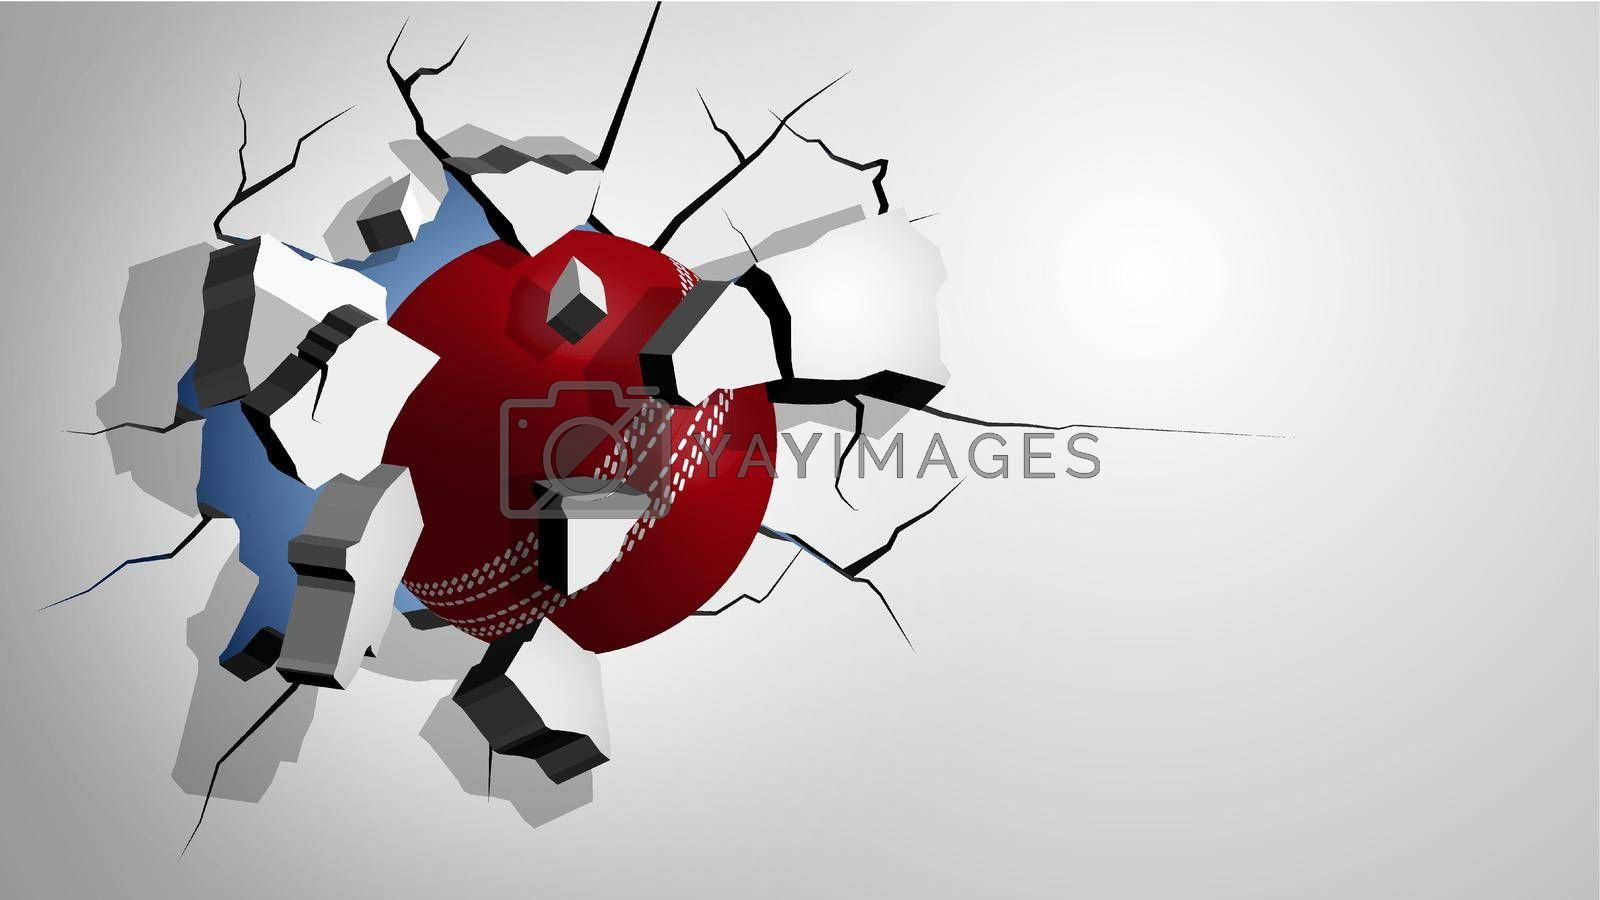 Royalty free image of red cricket ball punched through the wall and breaks into shards, cracks on wall. Inflicting heavy damage. Vector by RNko